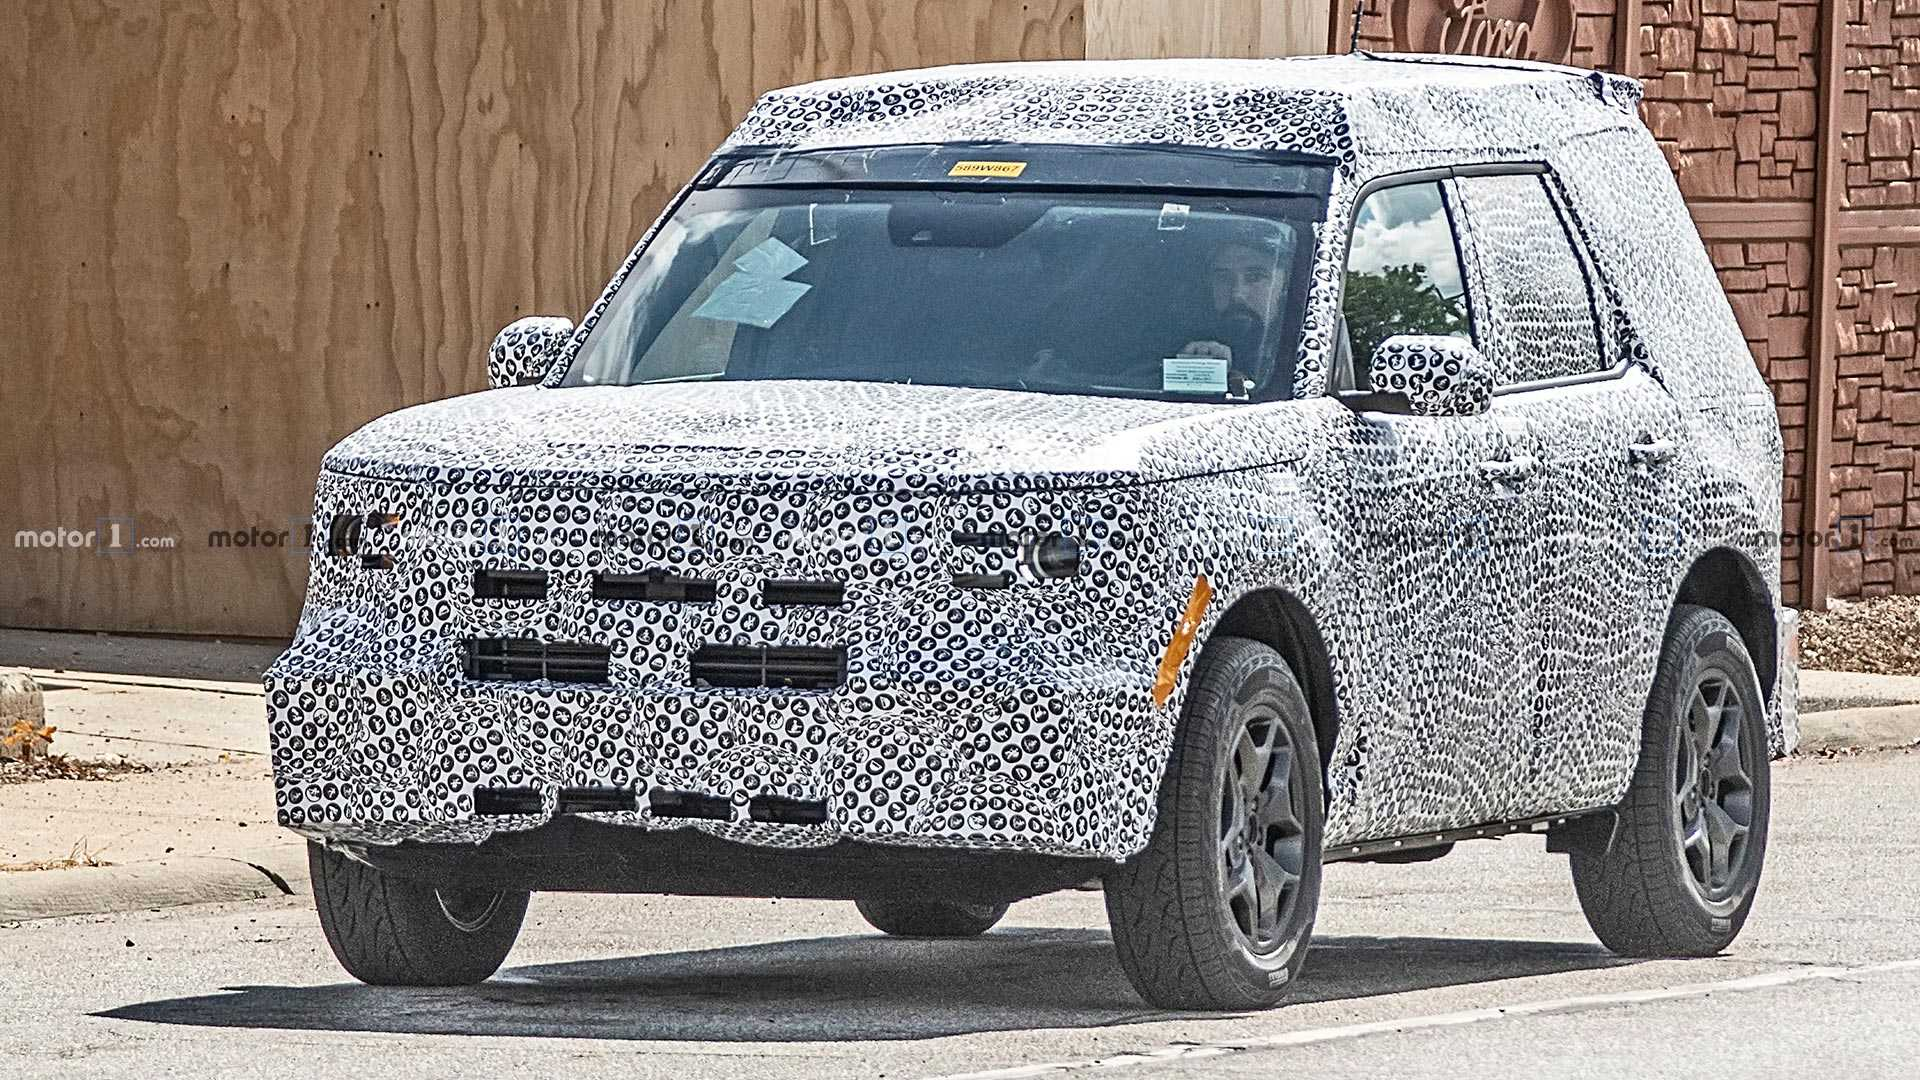 2019 - [Ford] Baby Bronco - Page 2 Ford-baby-bronco-spy-shots